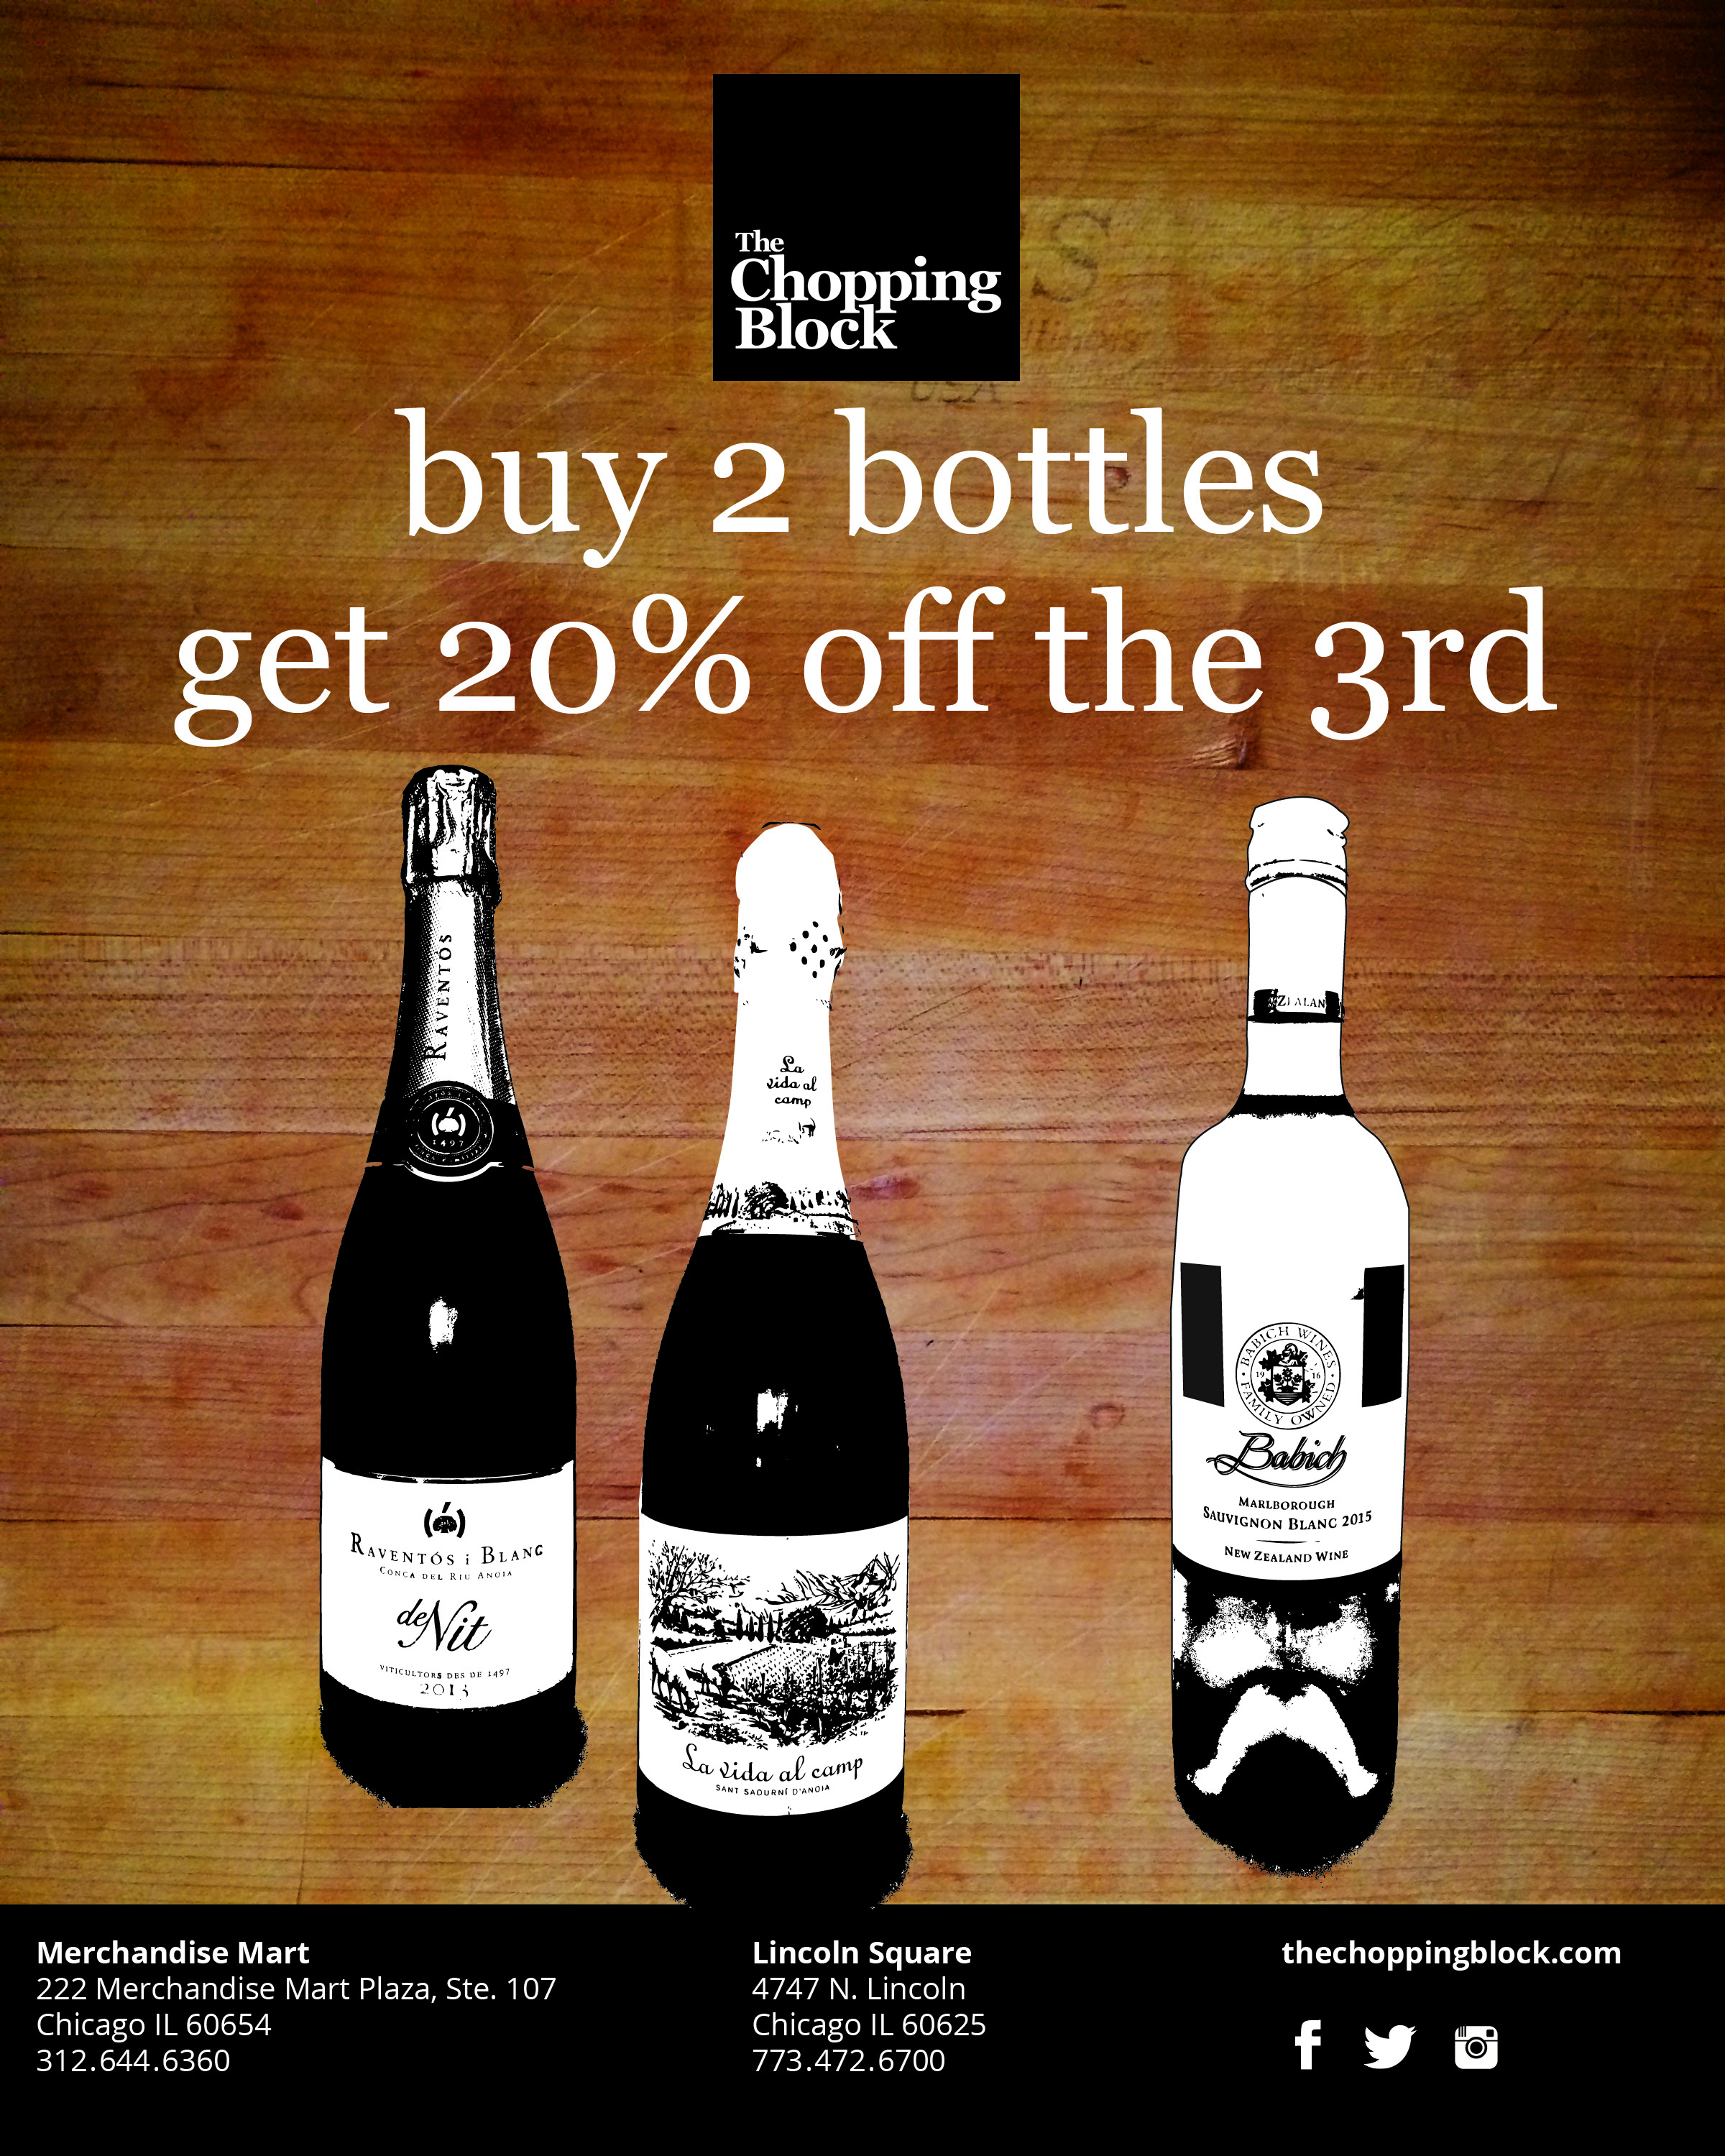 TCB_monthlyretailpromo_may_wine_2016_8x10.jpg